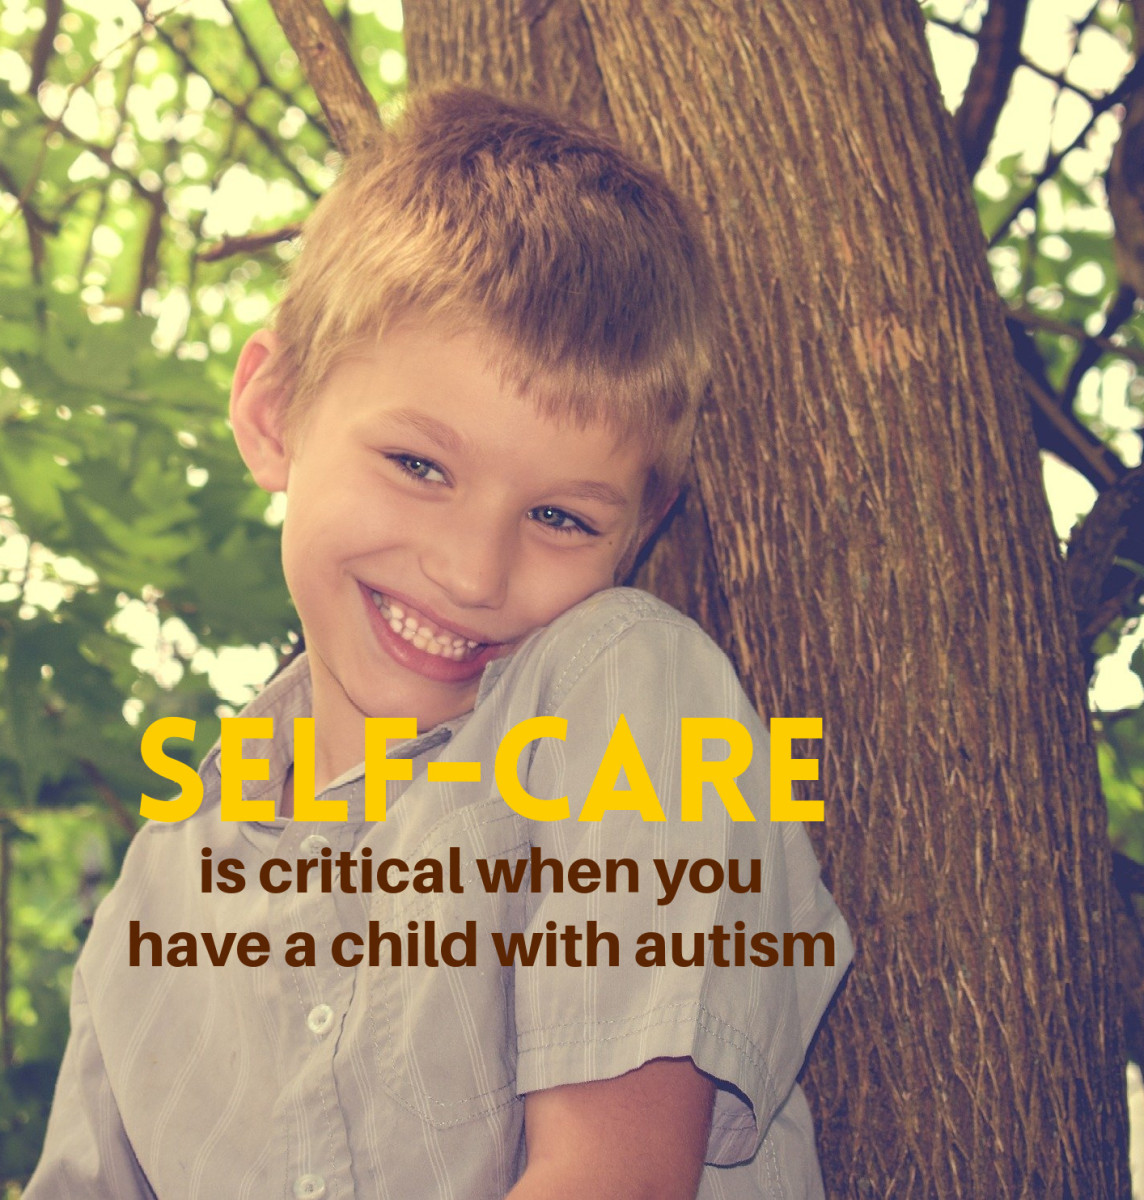 """Moms get deluged with tips from doctors, therapists, and teachers about helping their child with autism. What they most need to hear, though, is: """"Don't forget they you matter, too. Take good care of yourself."""""""